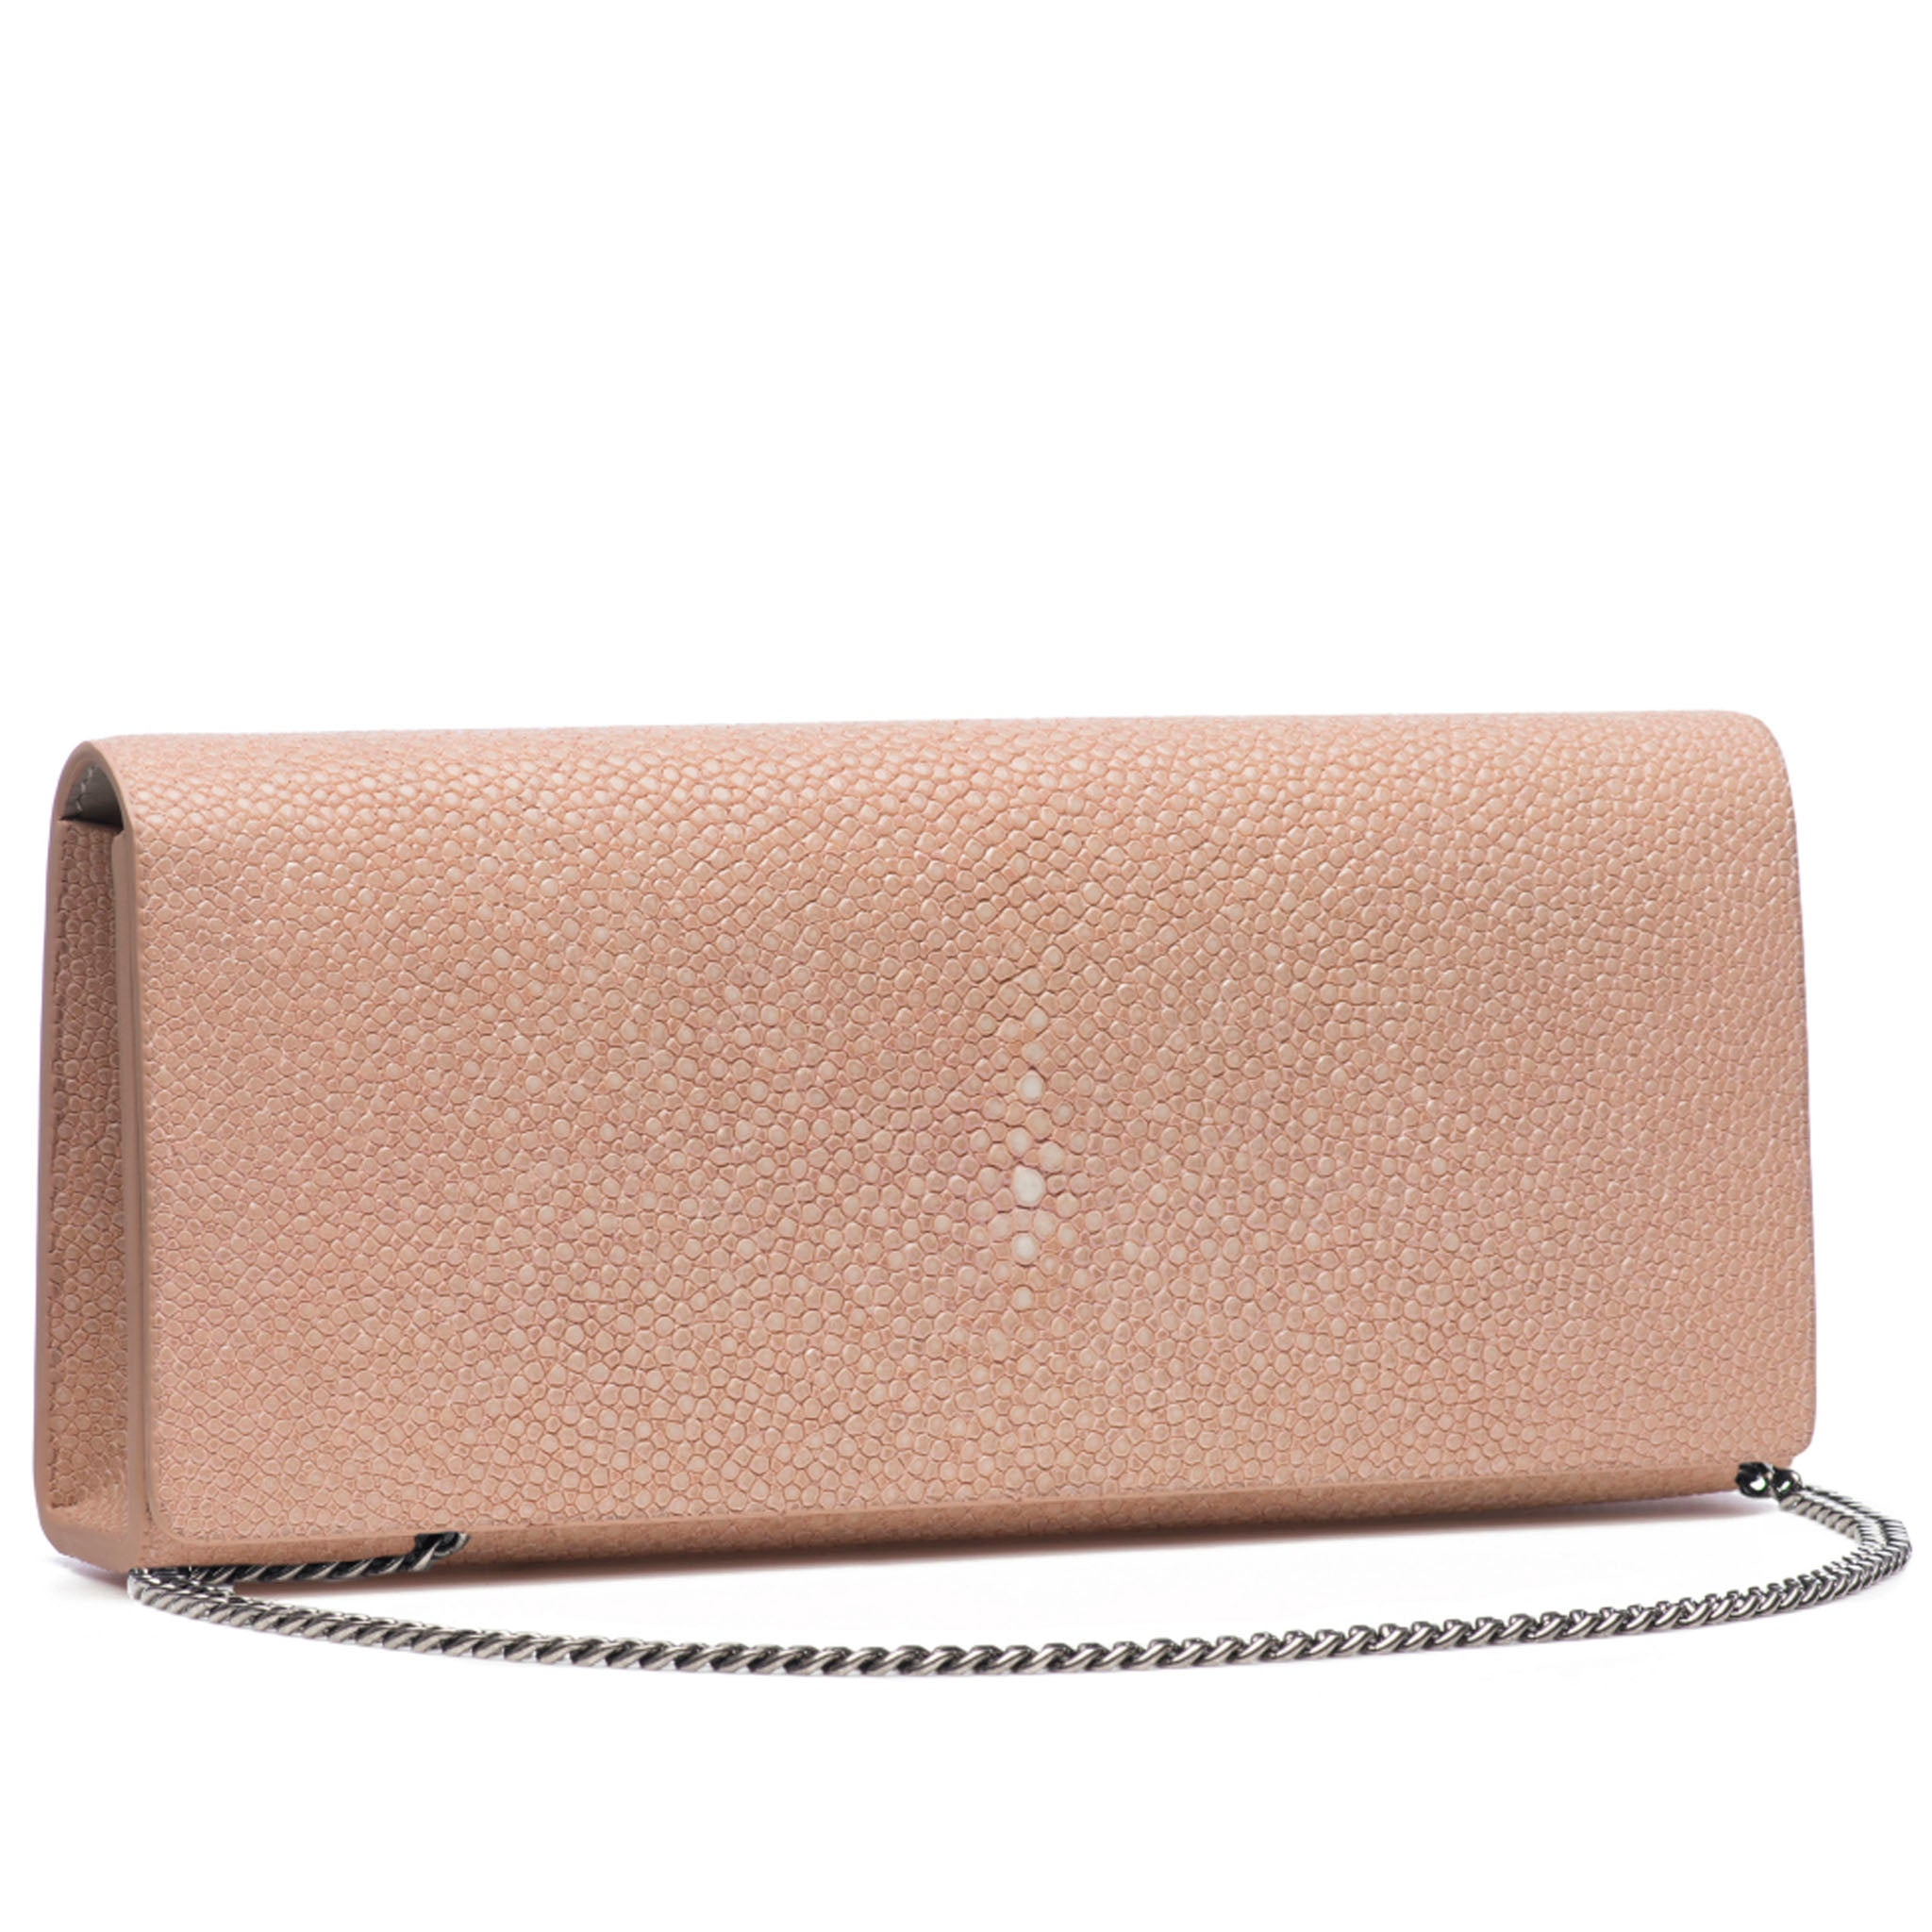 Blush Shagreen Clutch Bag Front View With Chain Cleo - Vivo Direct